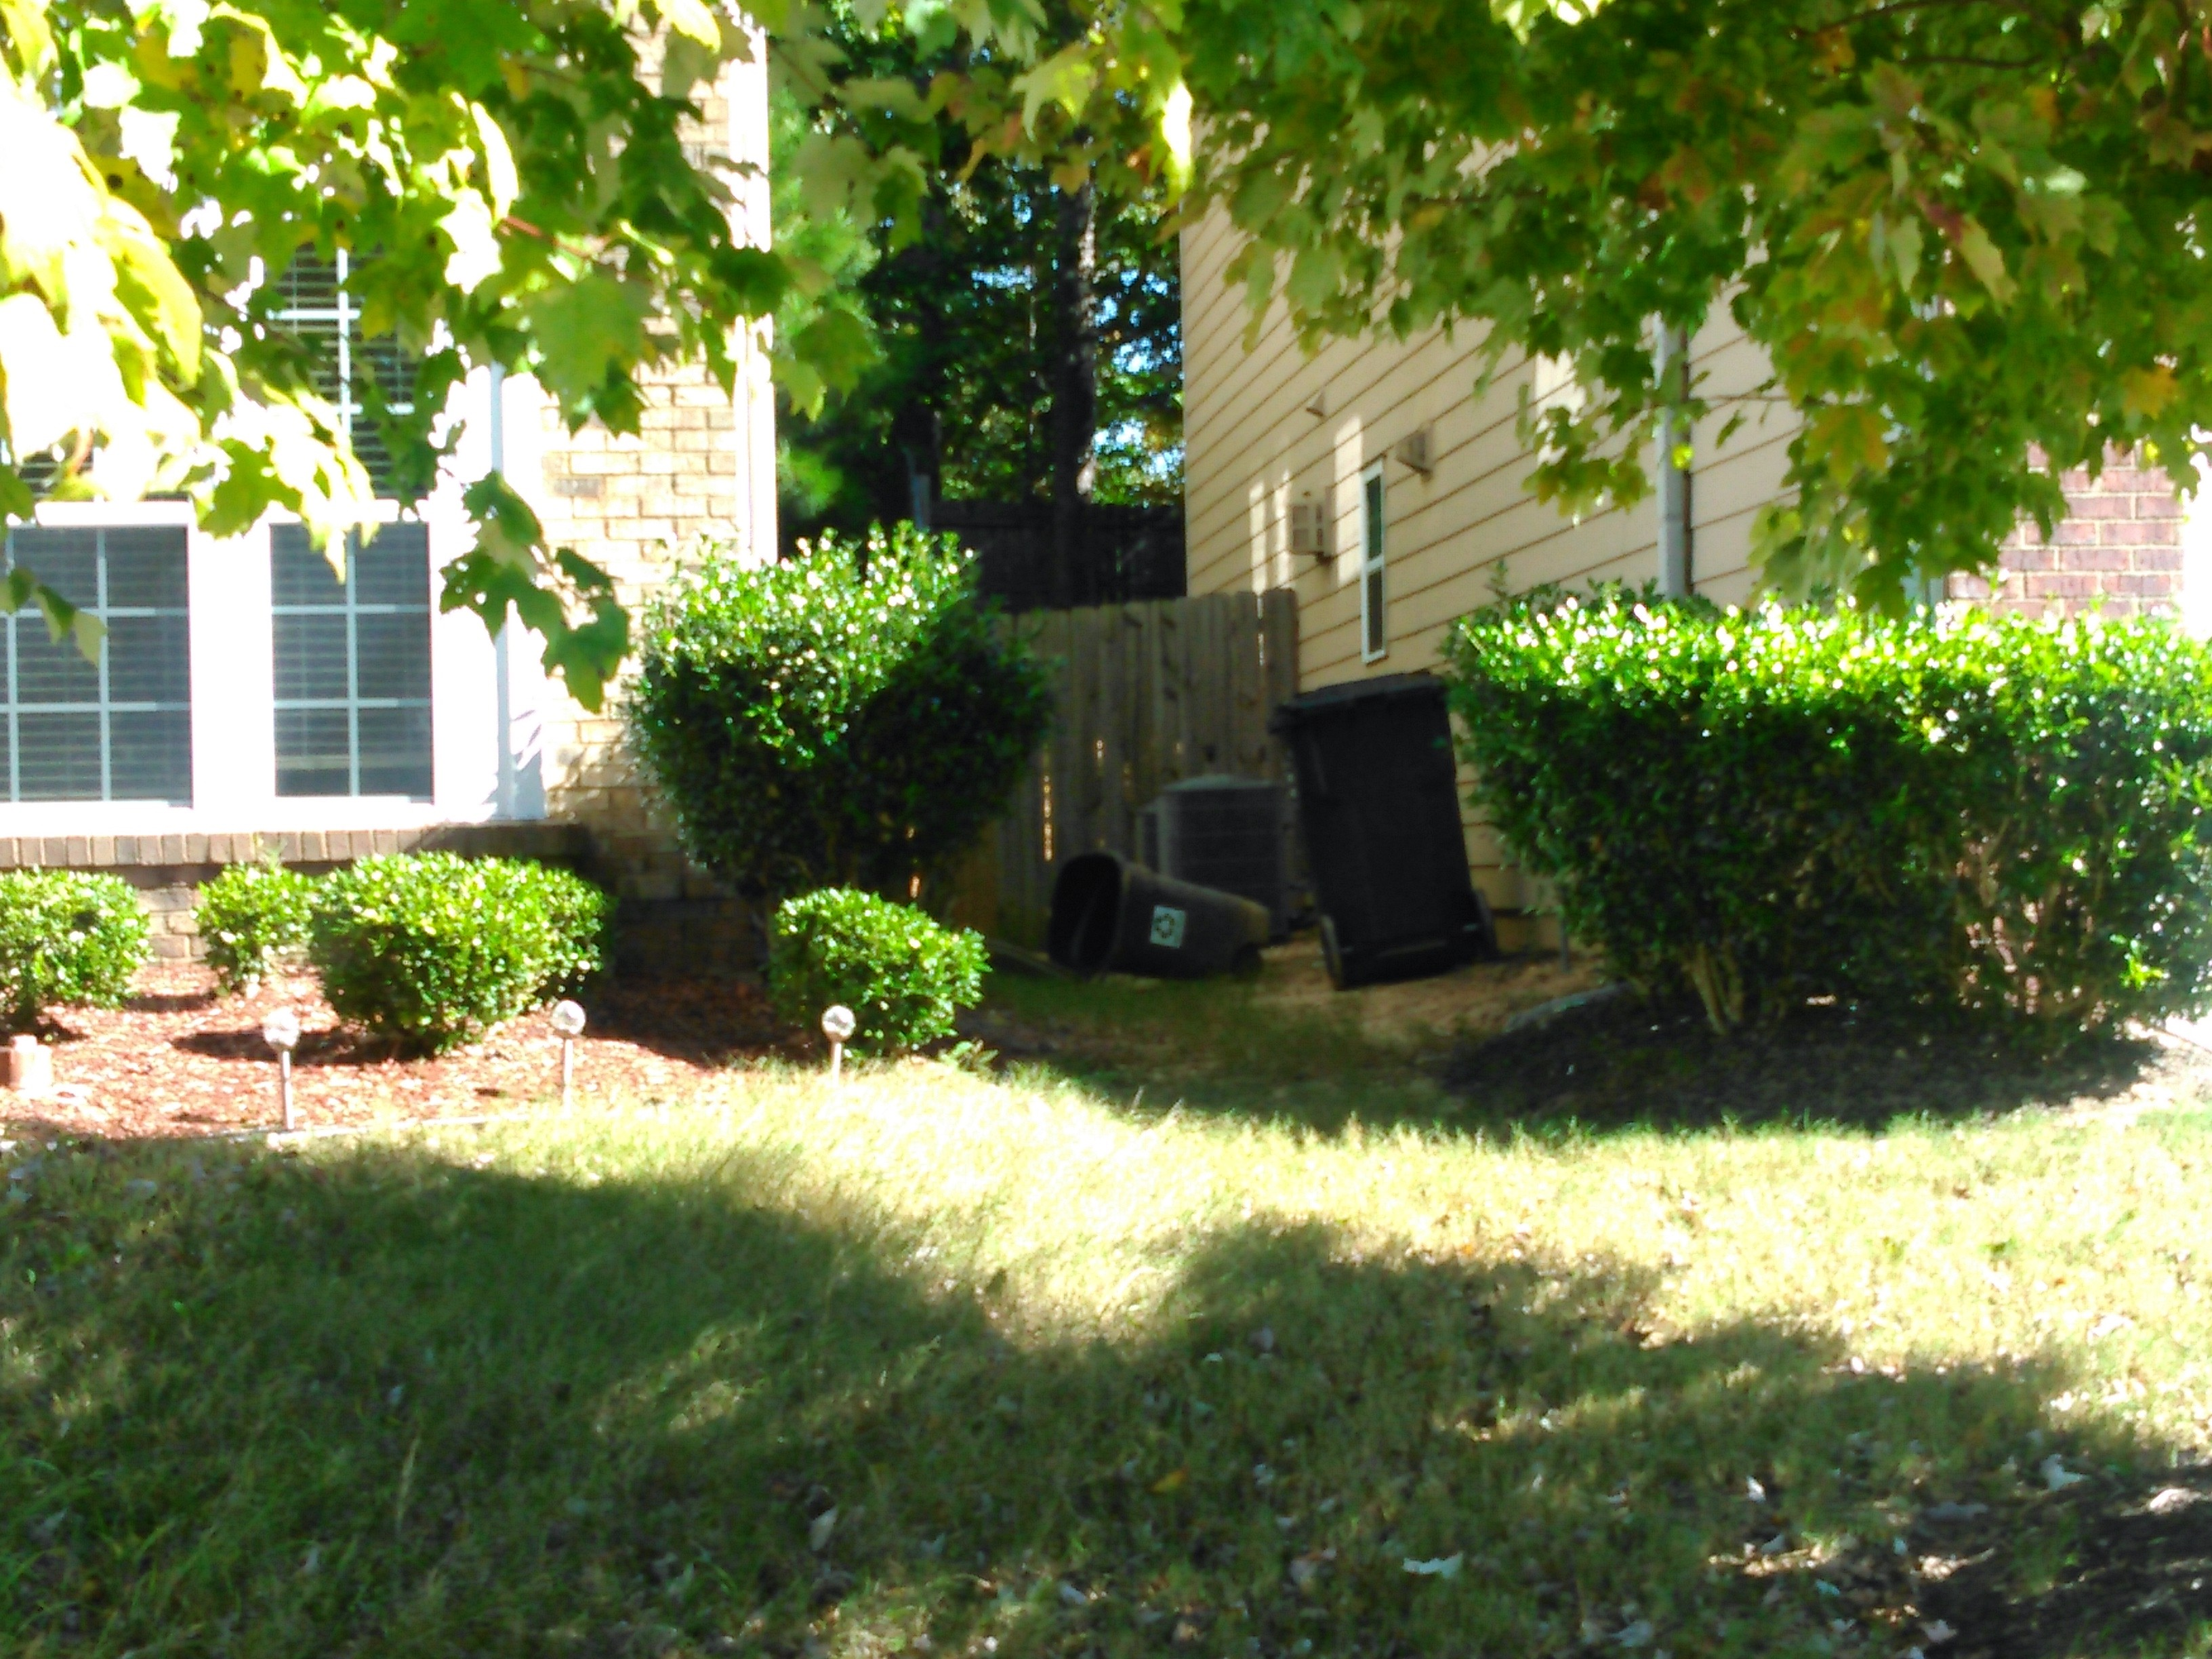 Lawn Mowing Contractor in Atlanta, GA, 30311